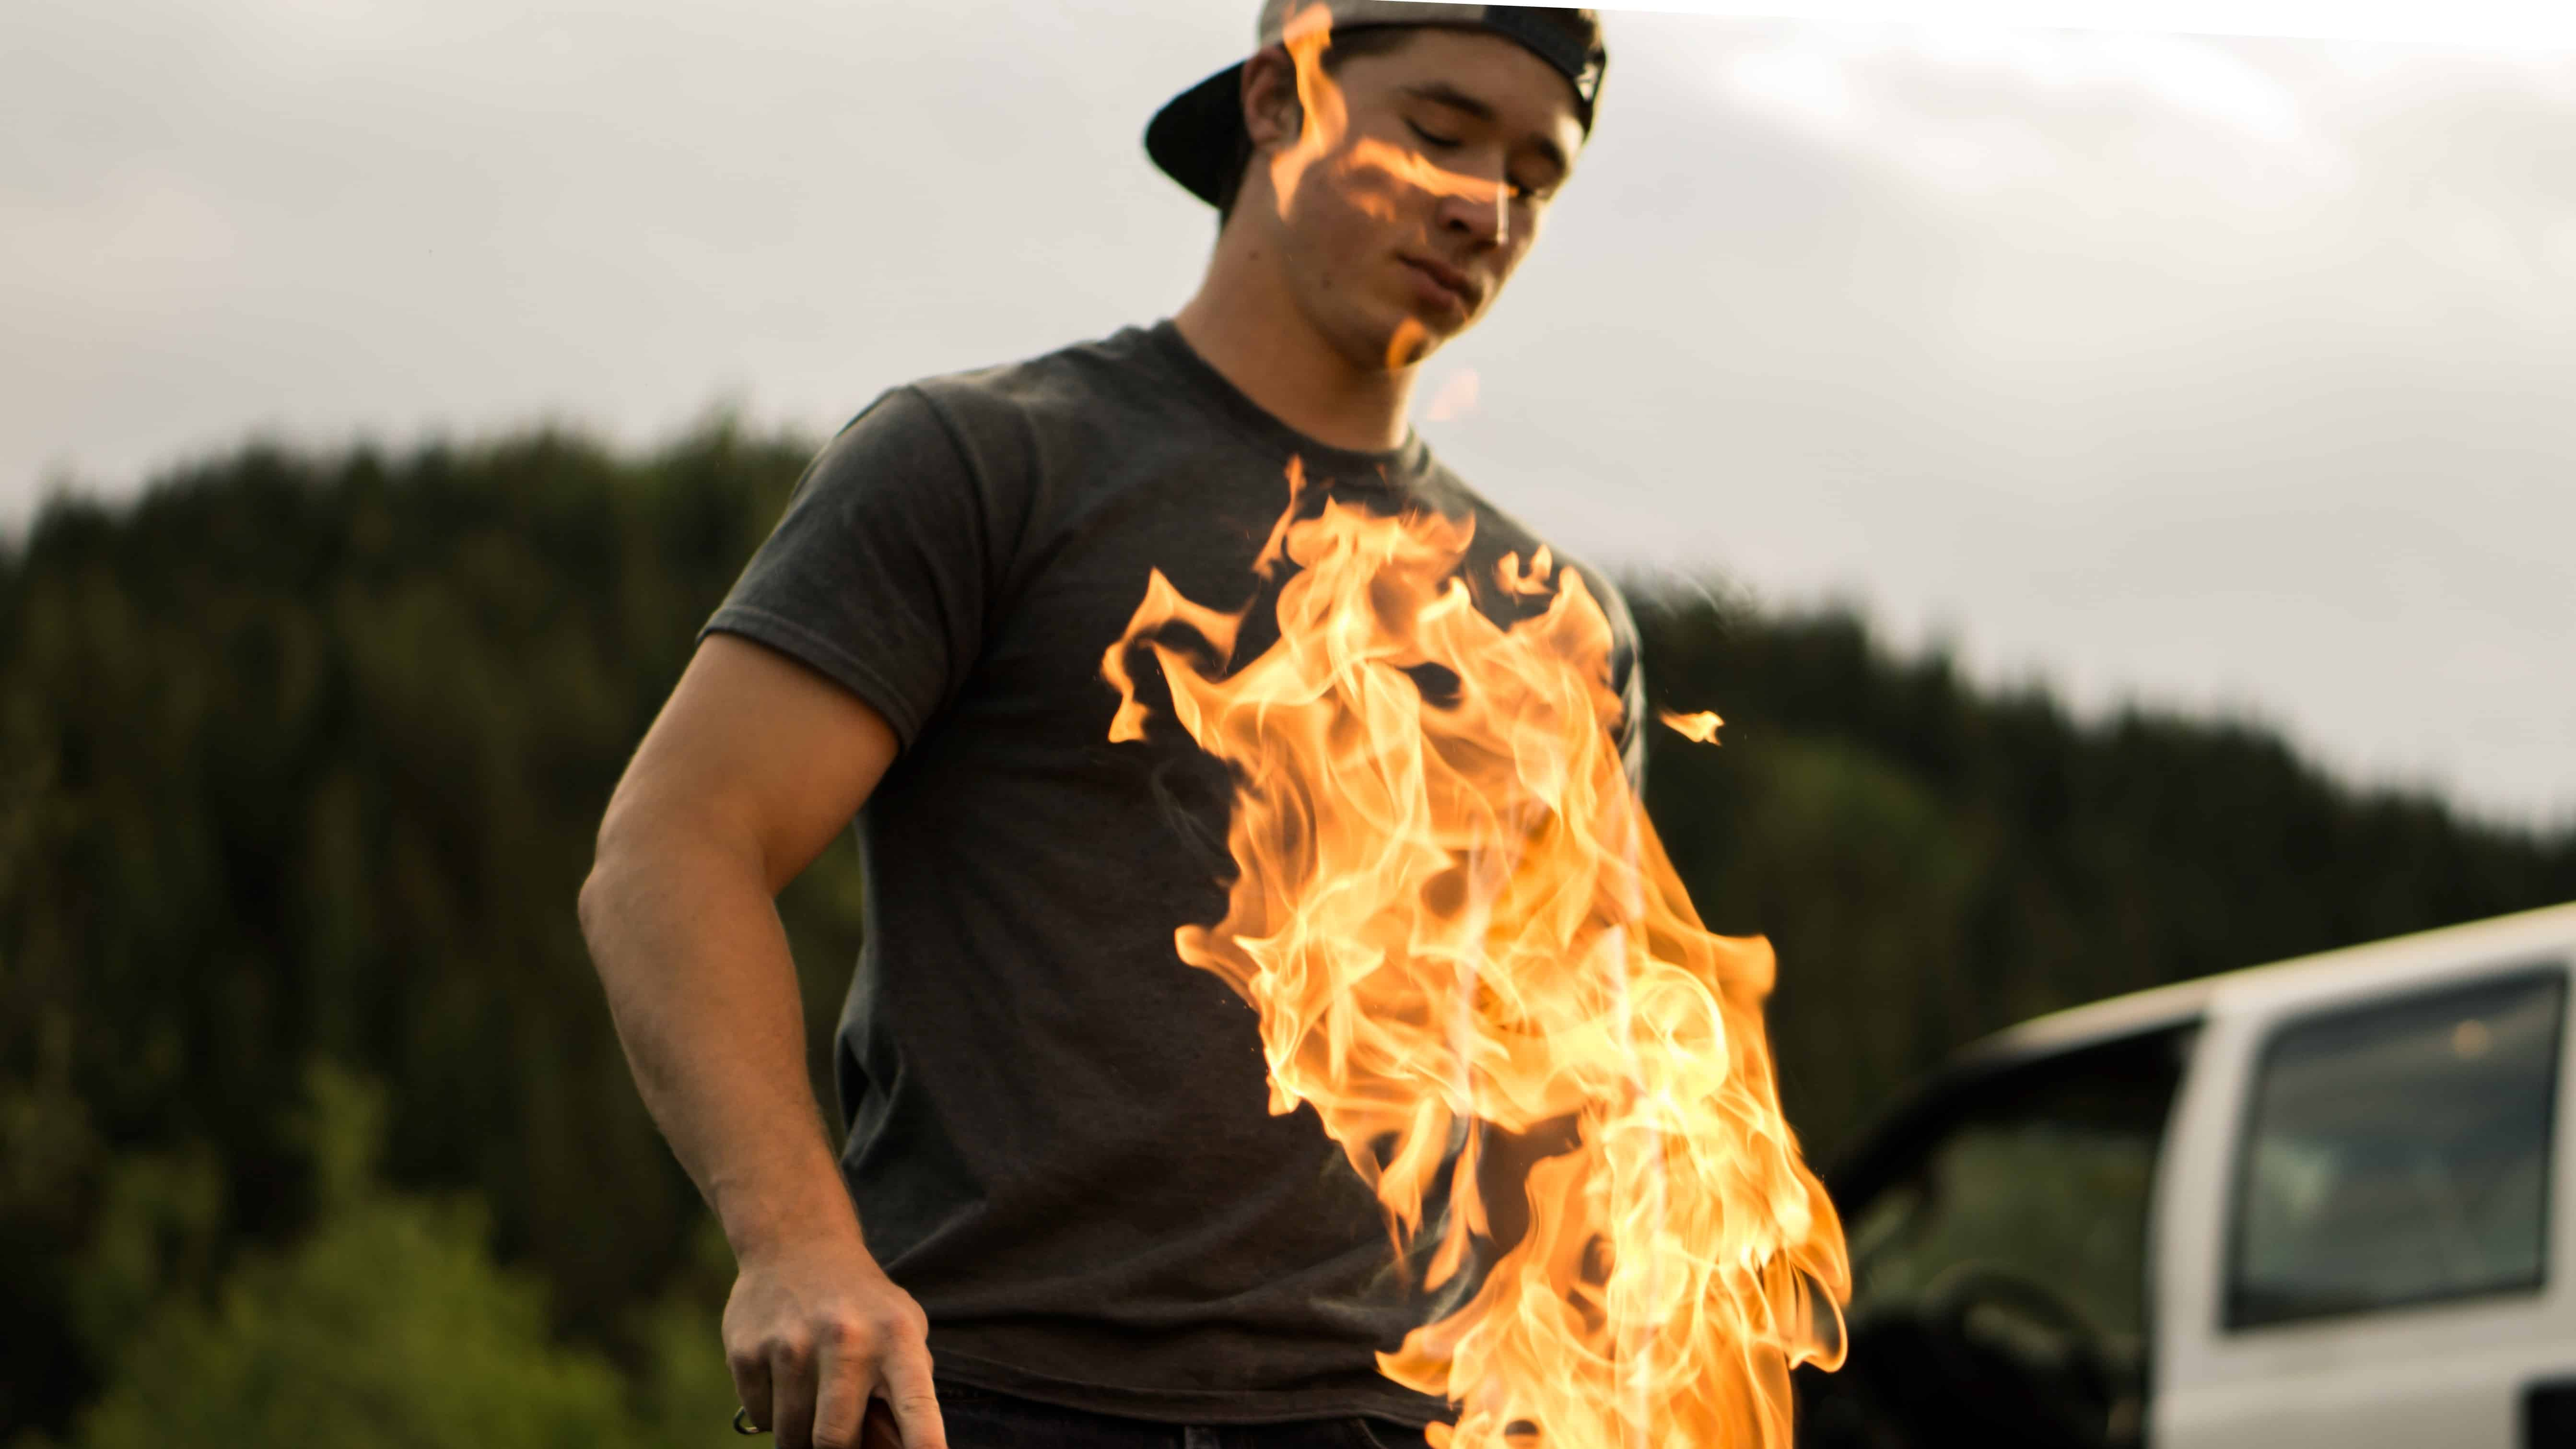 man bbq'ing with flames obscuring him